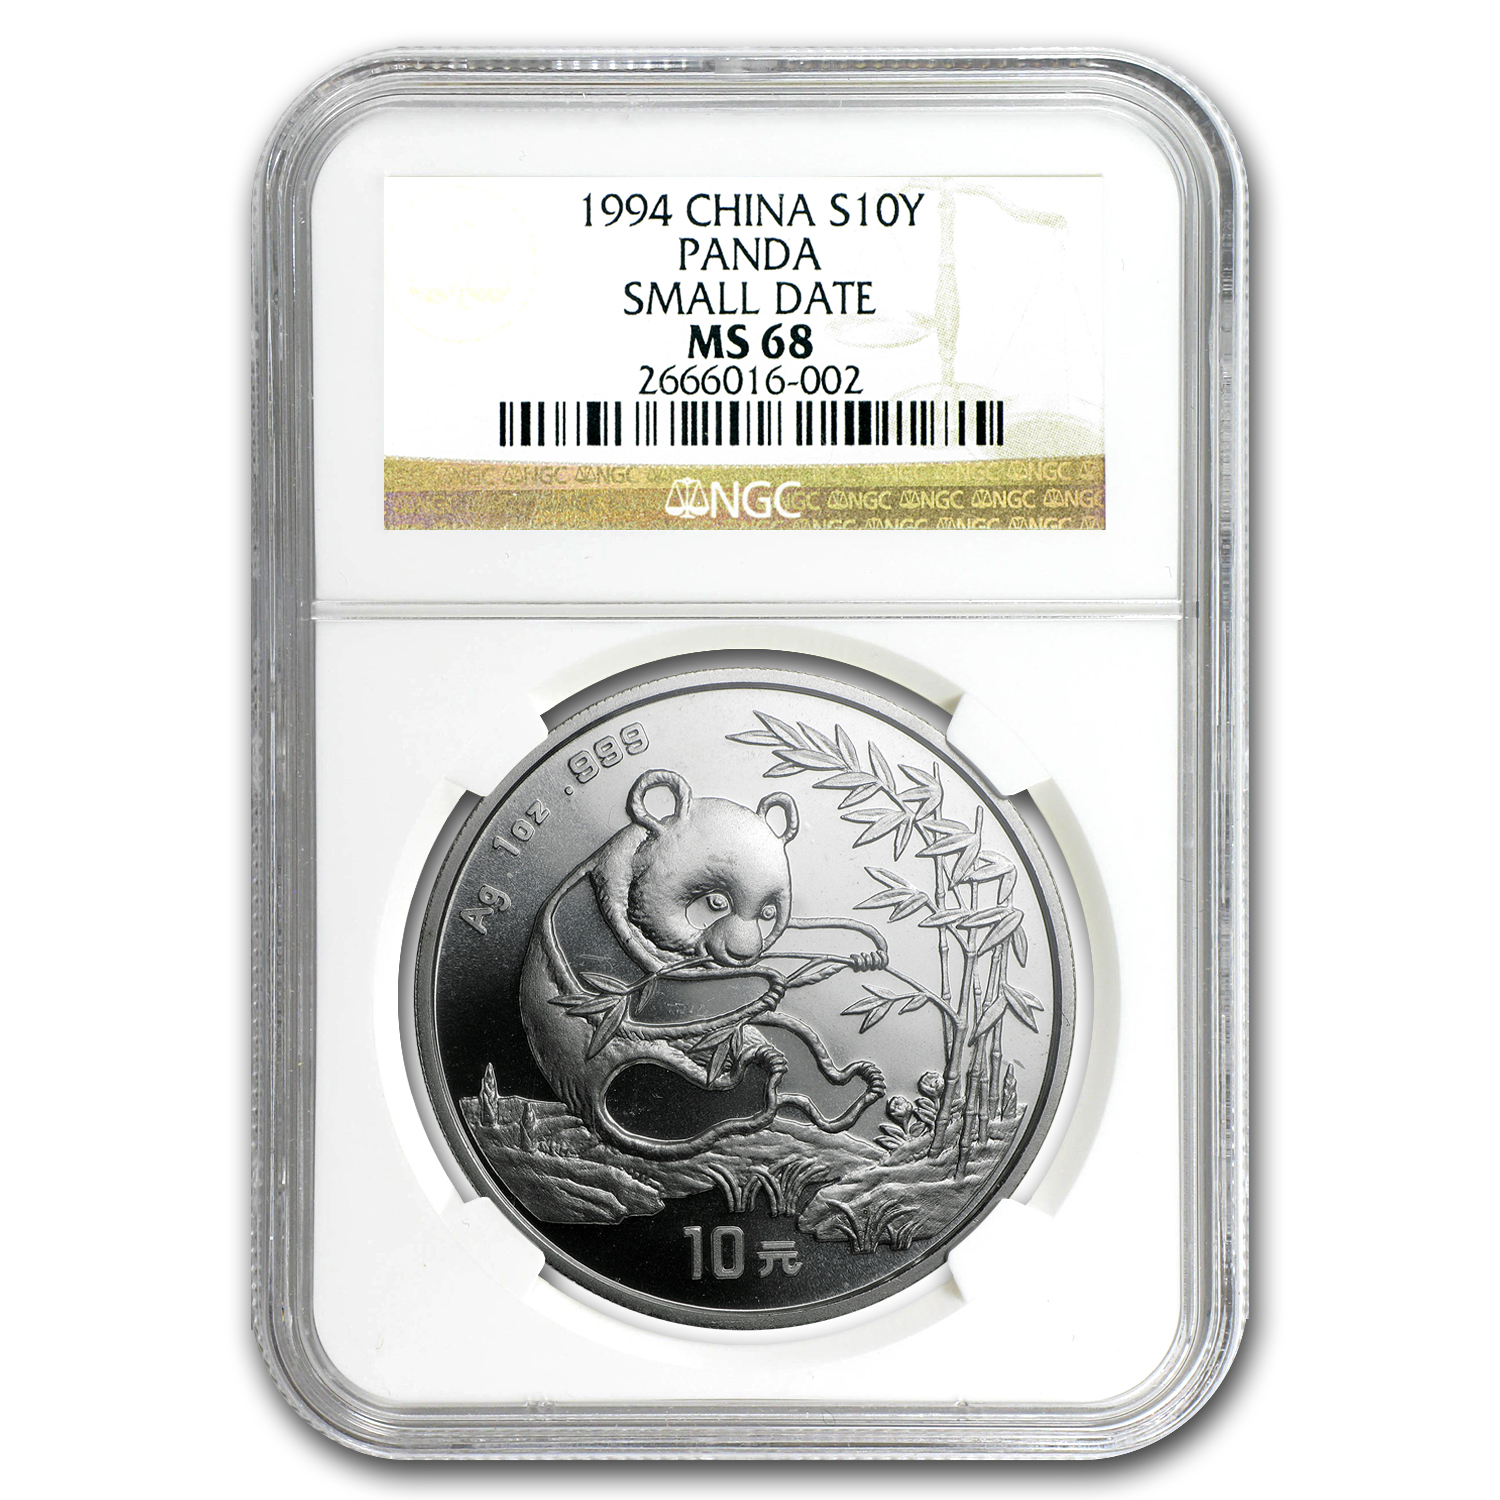 1994 China 1 oz Silver Panda MS-68 NGC (Small Date)